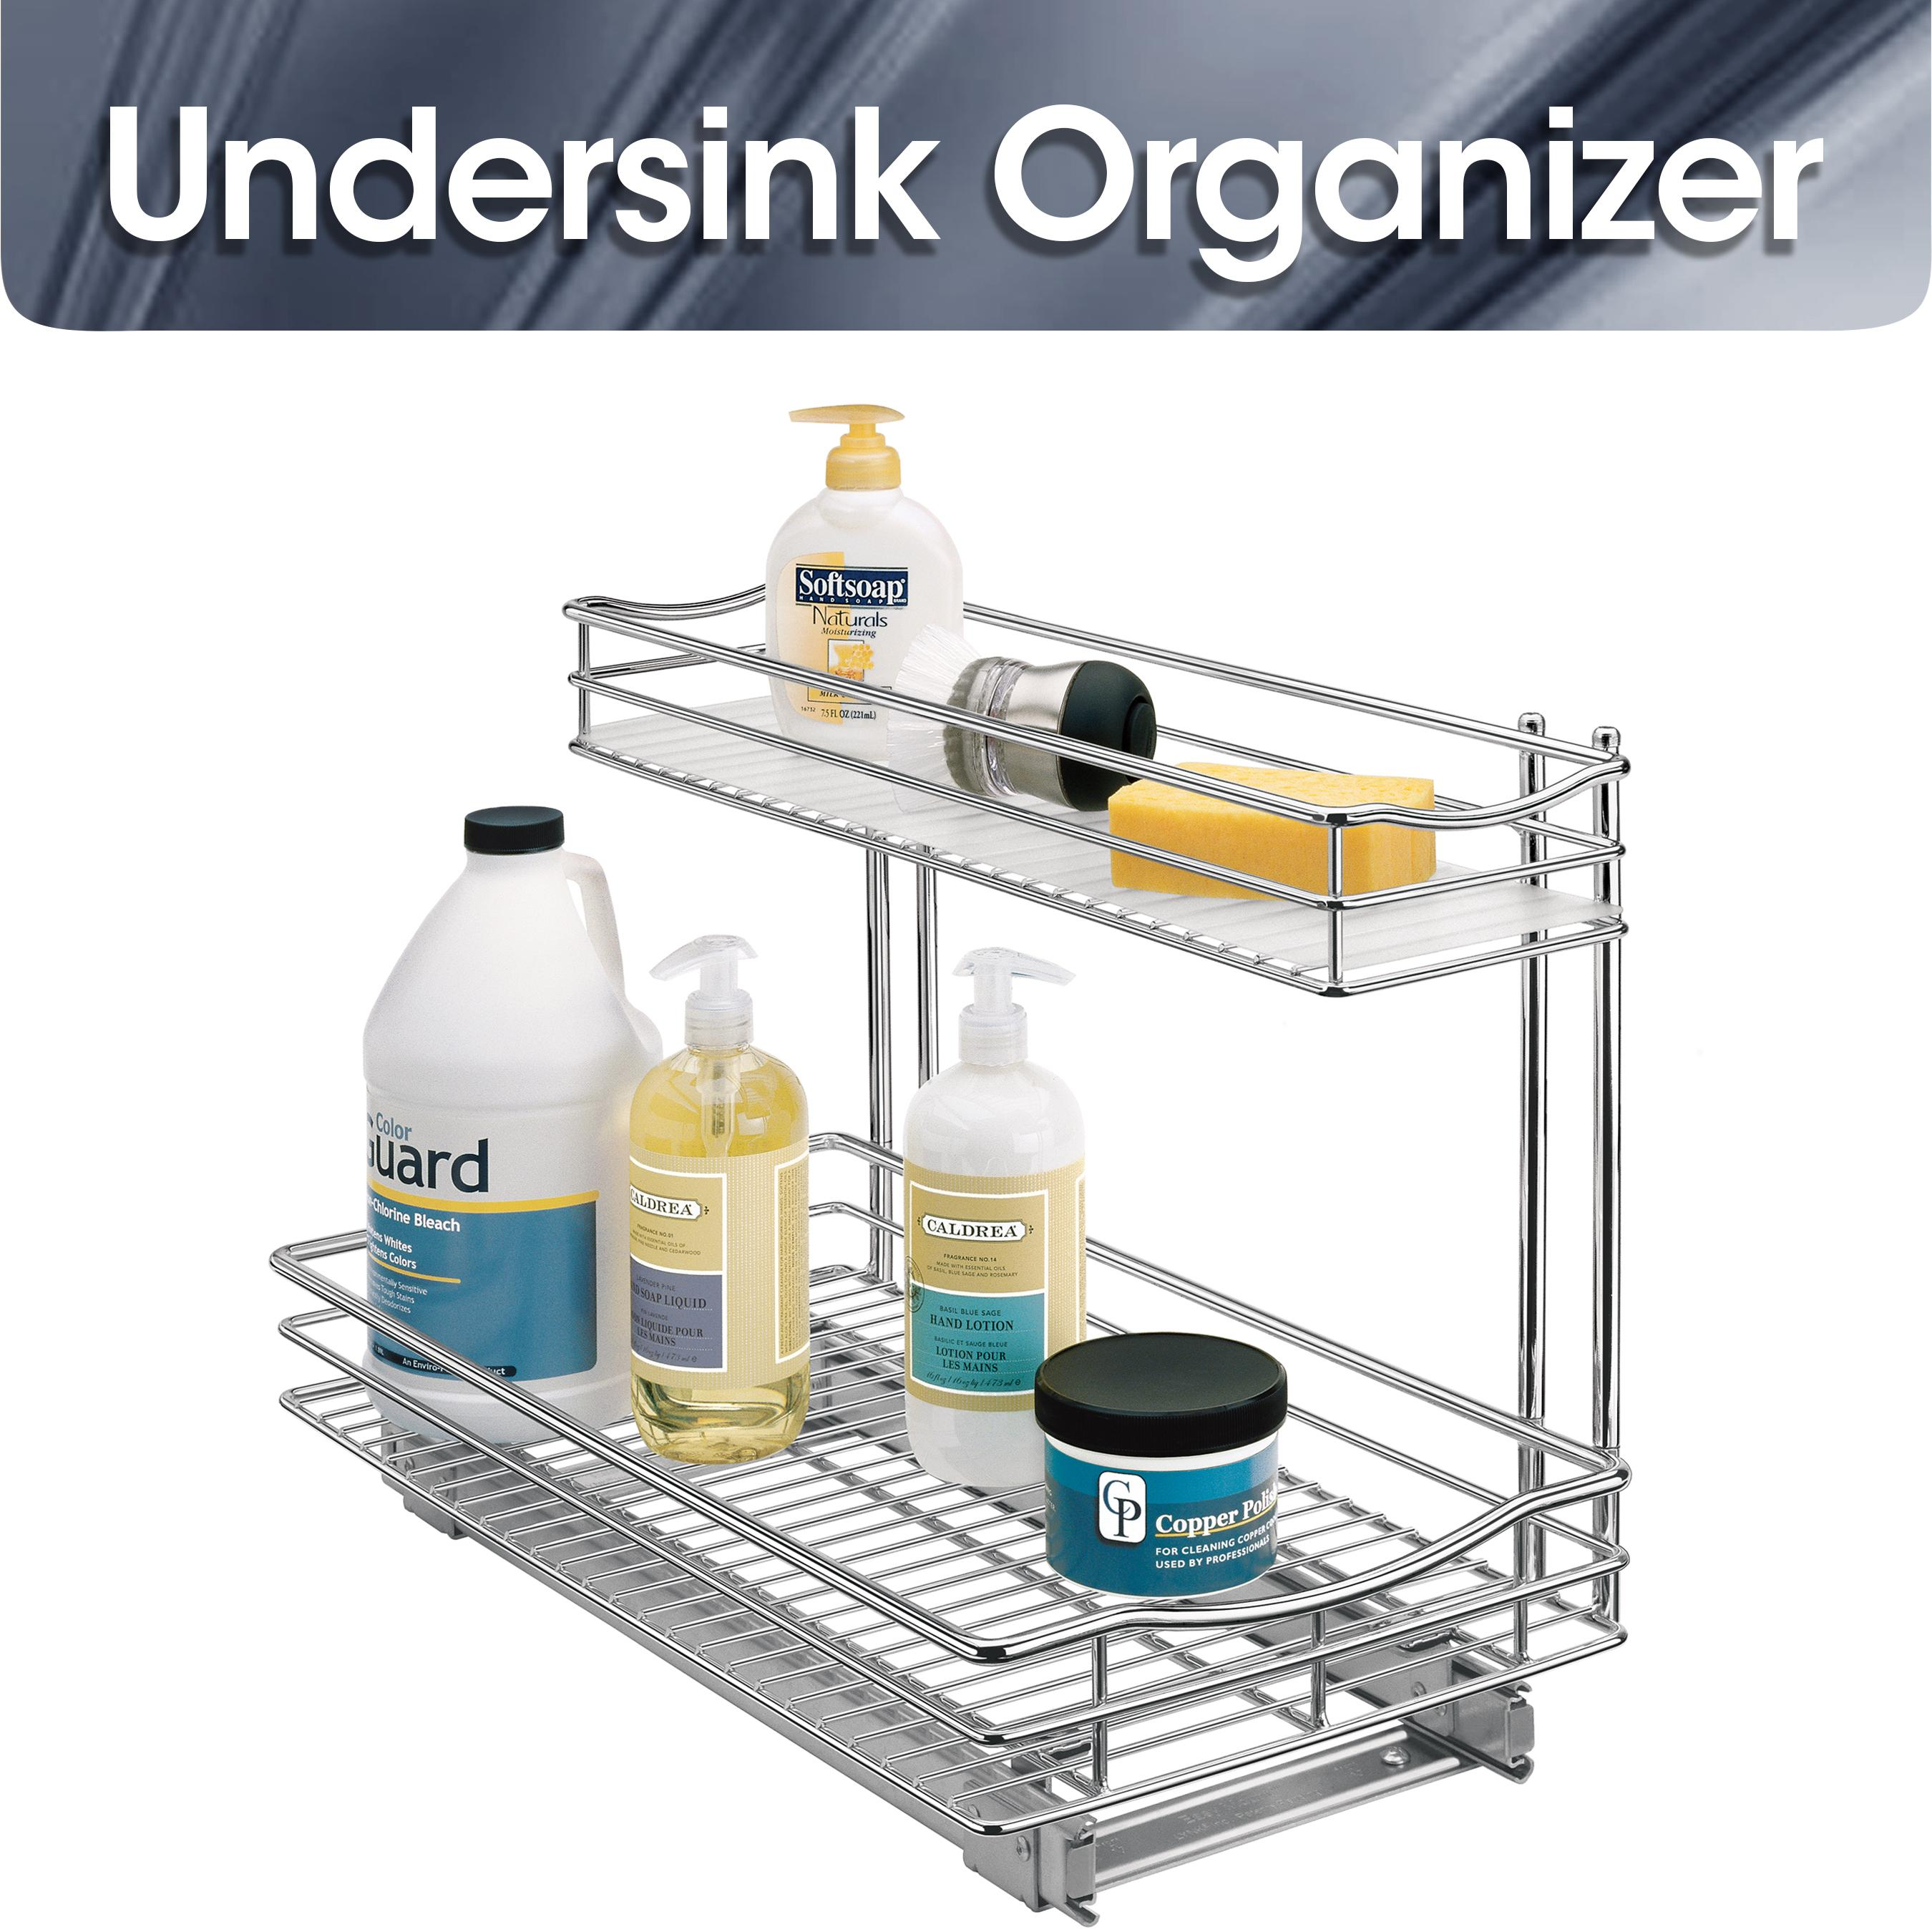 Lynk roll out under sink cabinet organizer pull out two tier sliding - Roll Out Undersink Cabinet Organizer Pull Out Two Tier Sliding Shelf View Larger